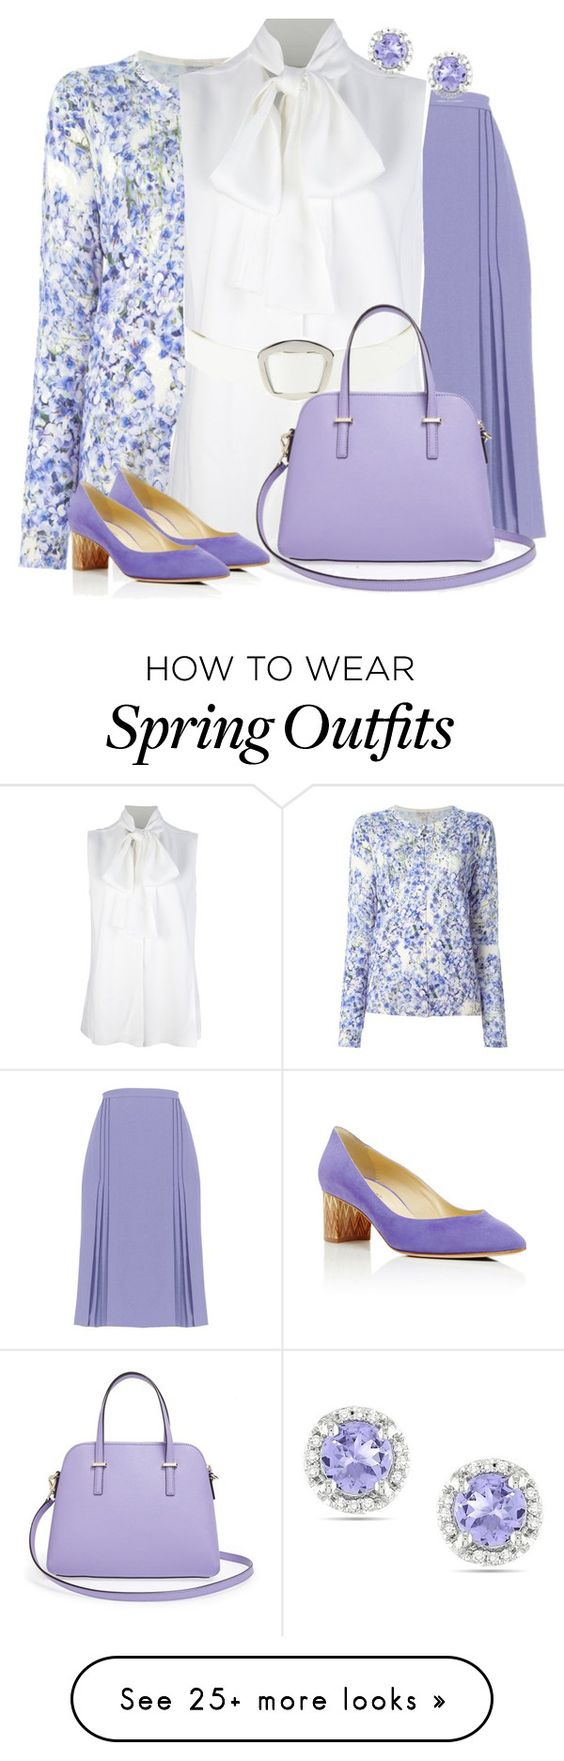 """Classic Spring Lilac"" by dsutlovic on Polyvore featuring Giambattista Valli, Victoria Beckham, Steve Madden, Kate Spade, Sarah Flint and Ice"